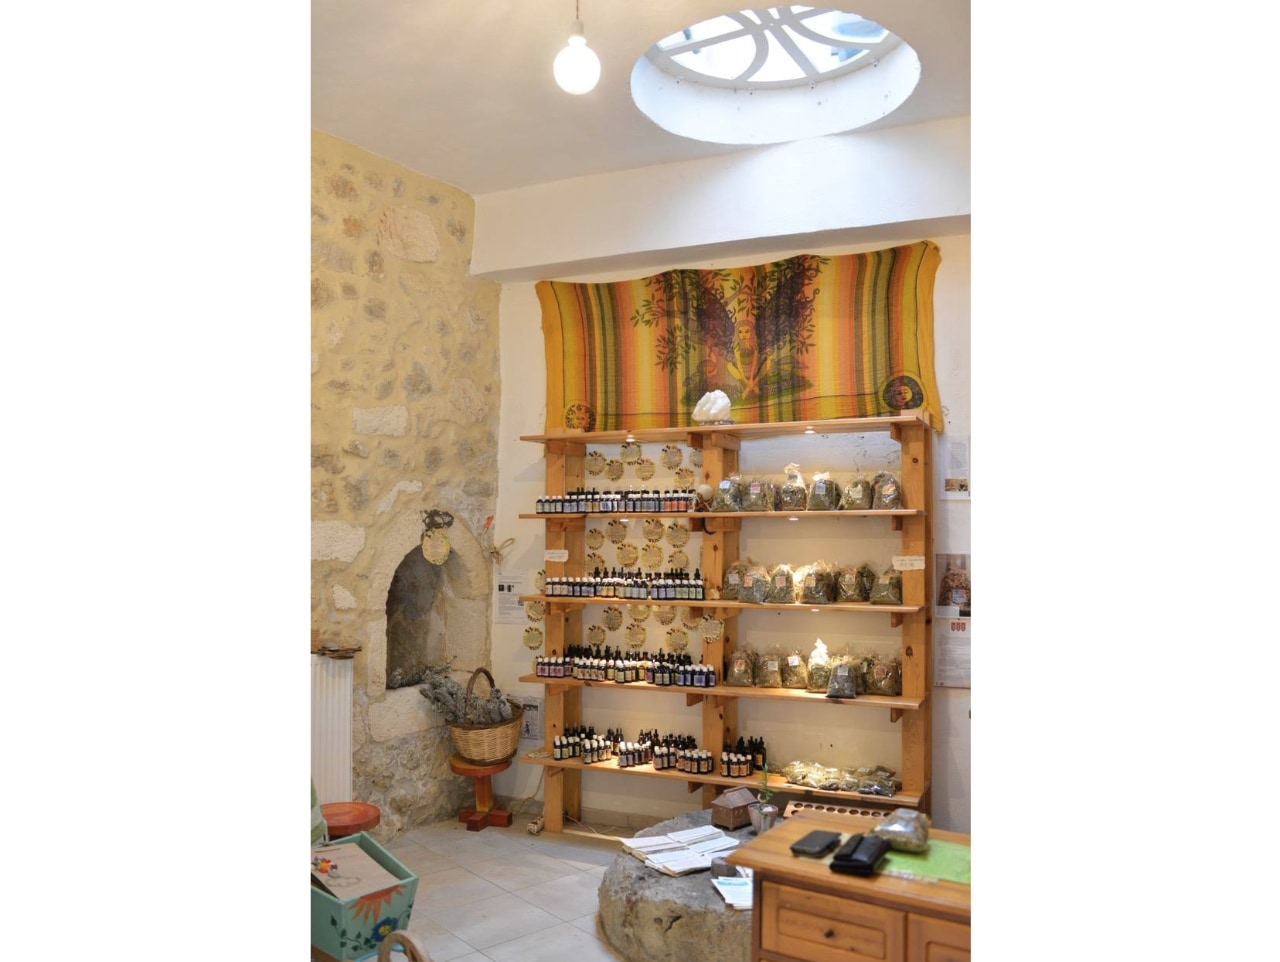 marianna's workshop maroulas village crete, health and balance shop crete, herbal teas maroulas village, natural extracts in oil maroulas rethimno, tinctures maroulas rethymno, natural organic creams maroulas village crete, herbs of crete